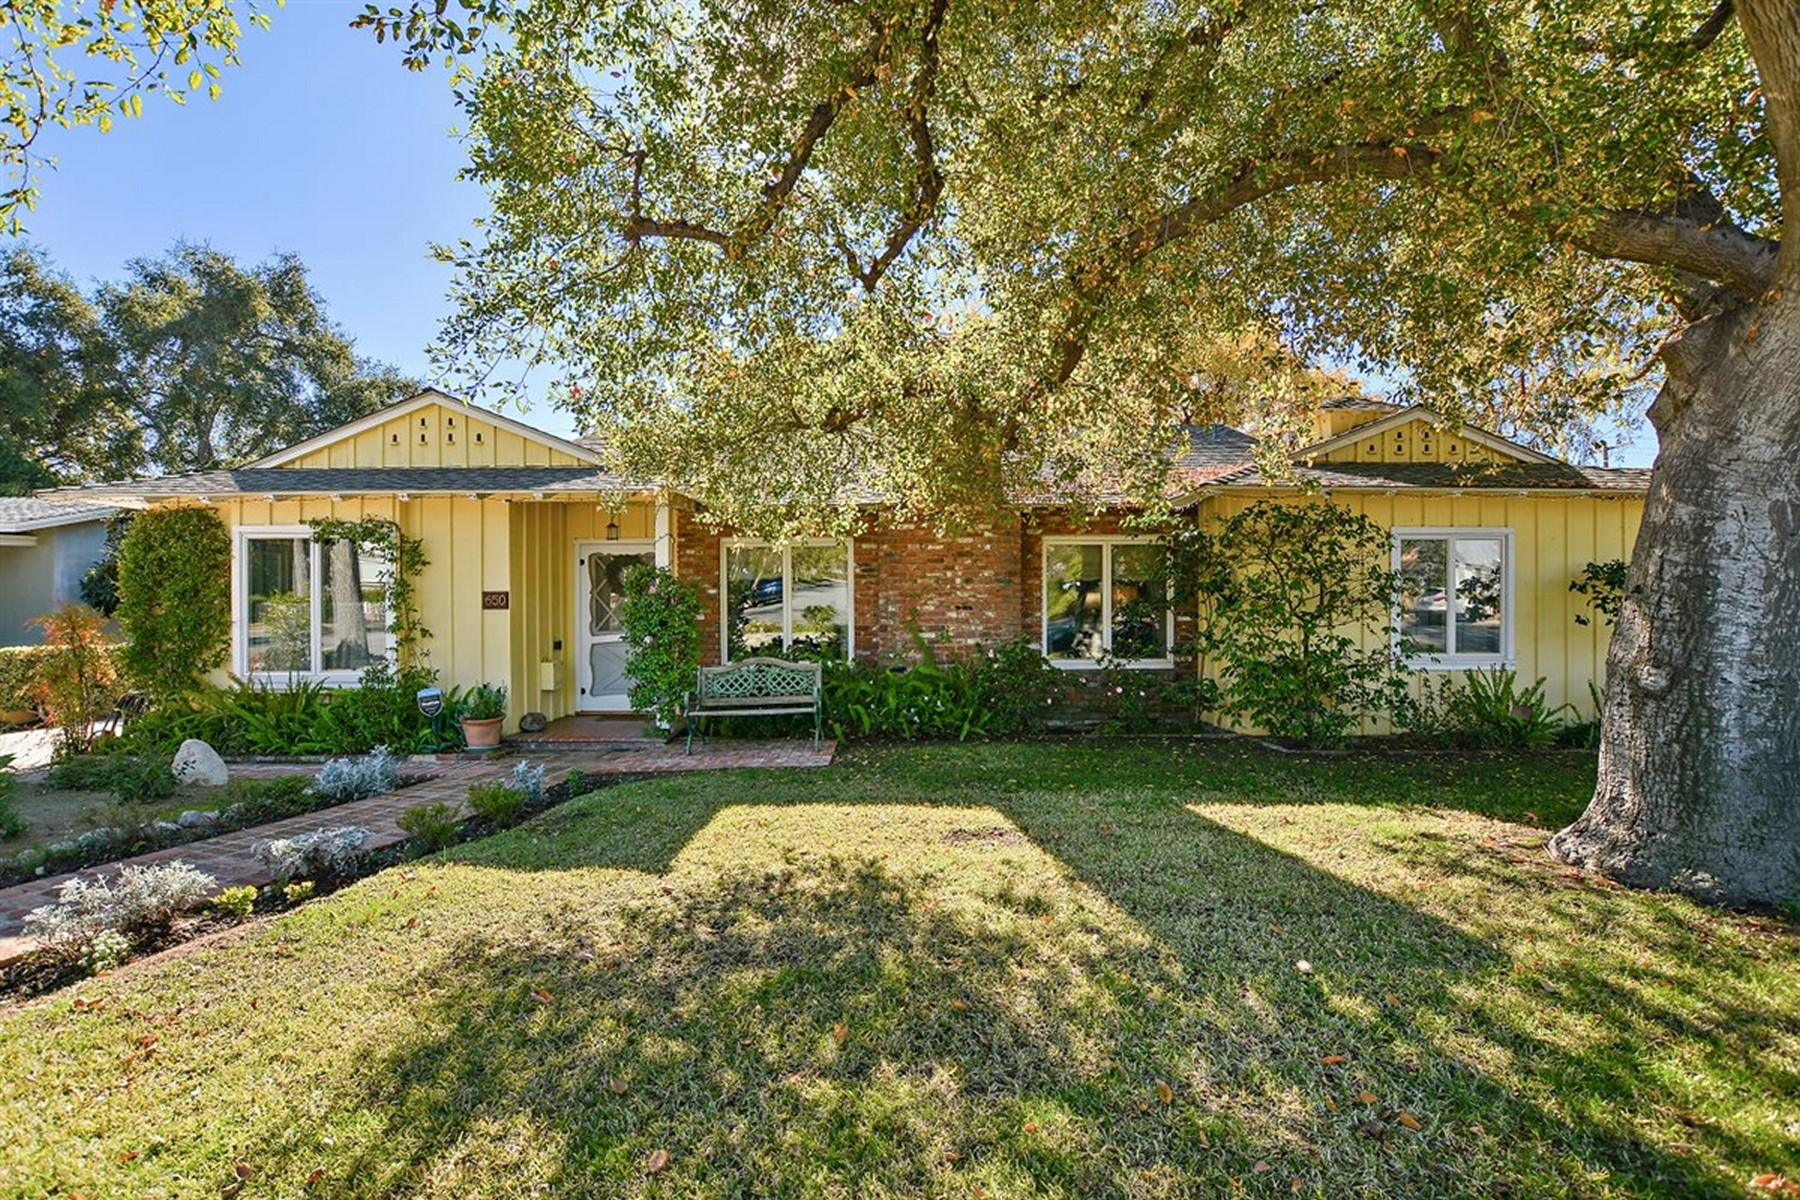 Single Family Homes for Sale at 650 W 11th St, Claremont, California 91711 650 W 11th Street Claremont, California 91711 United States